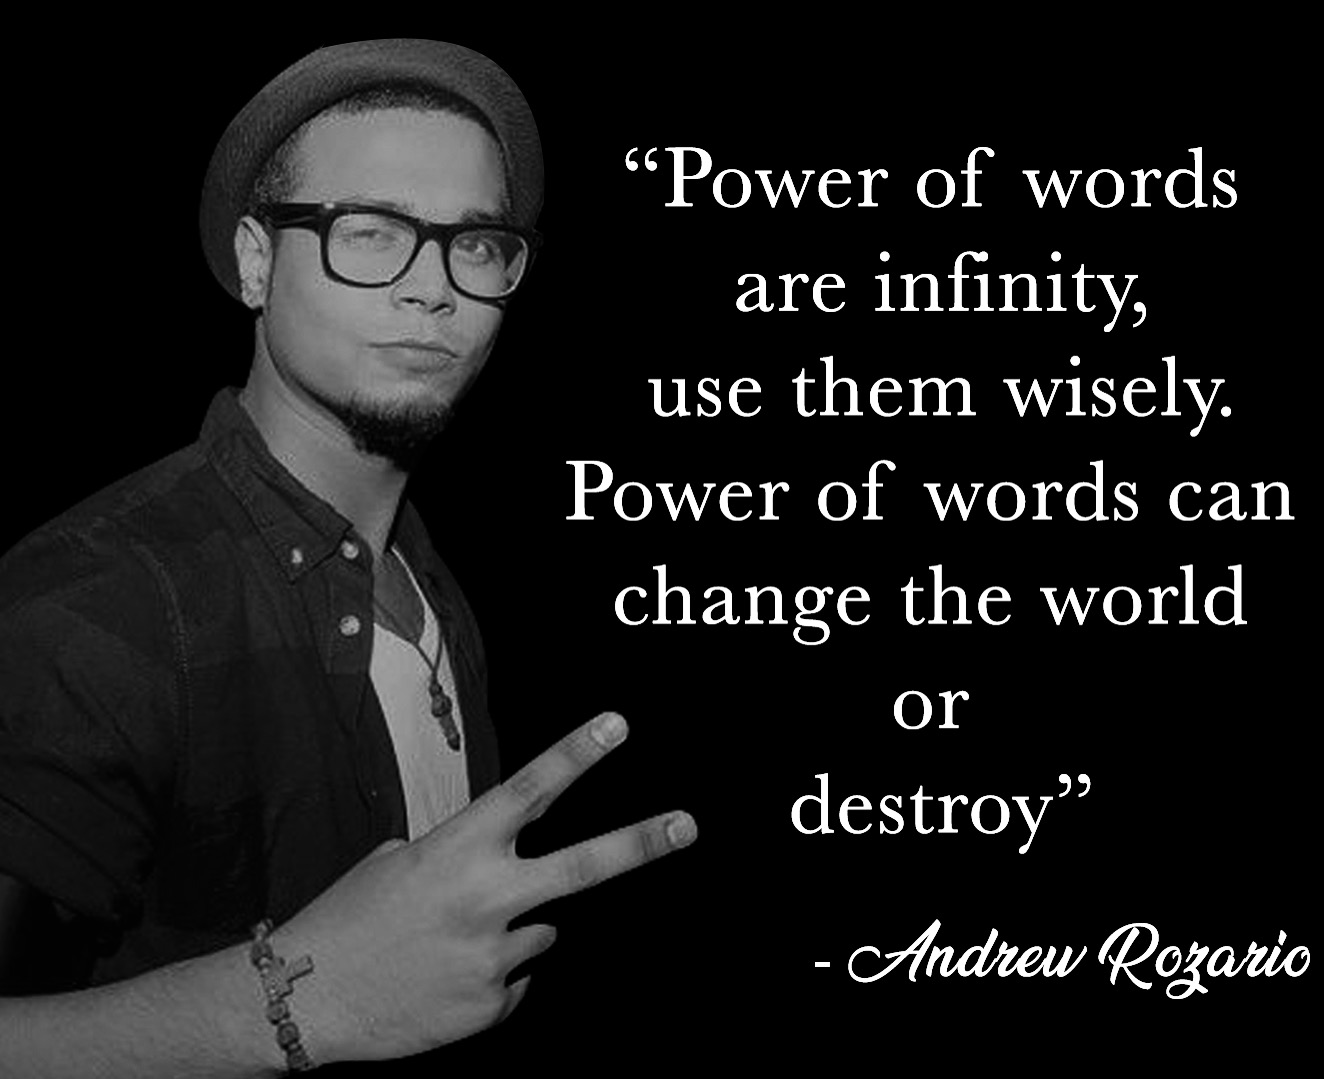 andrew rozario power of words